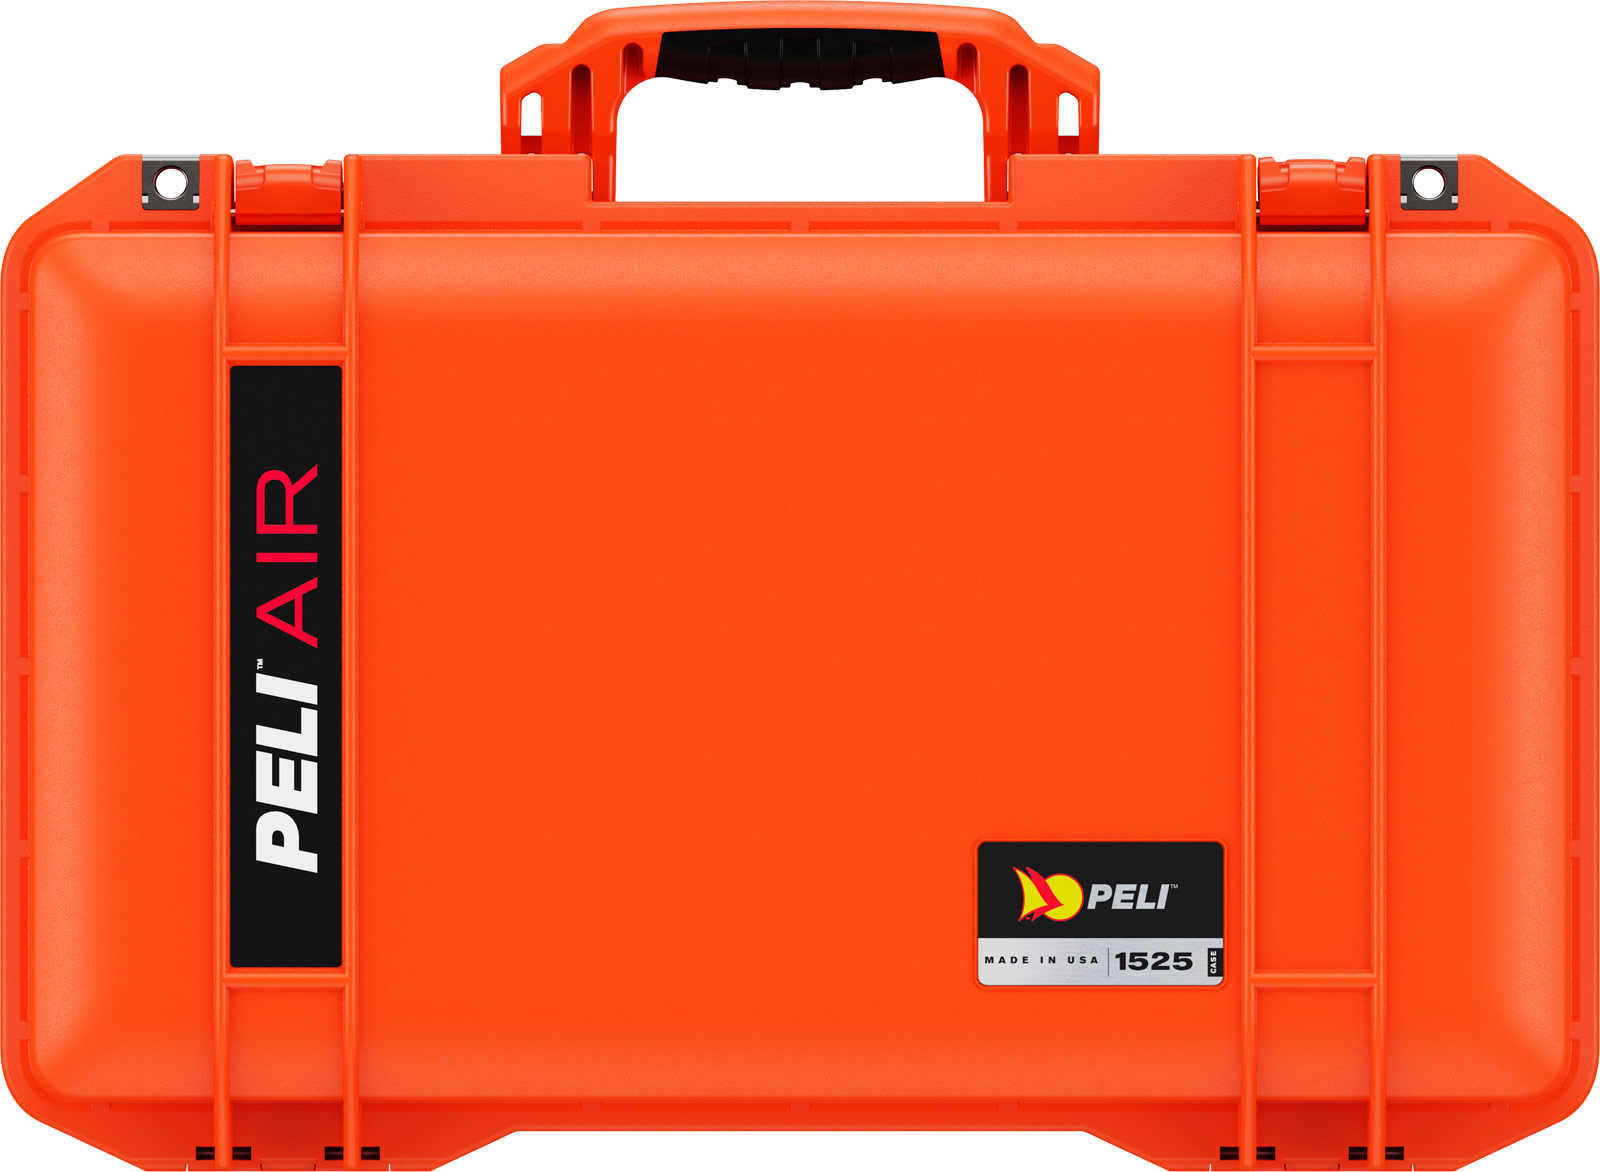 pelican 1525 lightweight cases orange air case